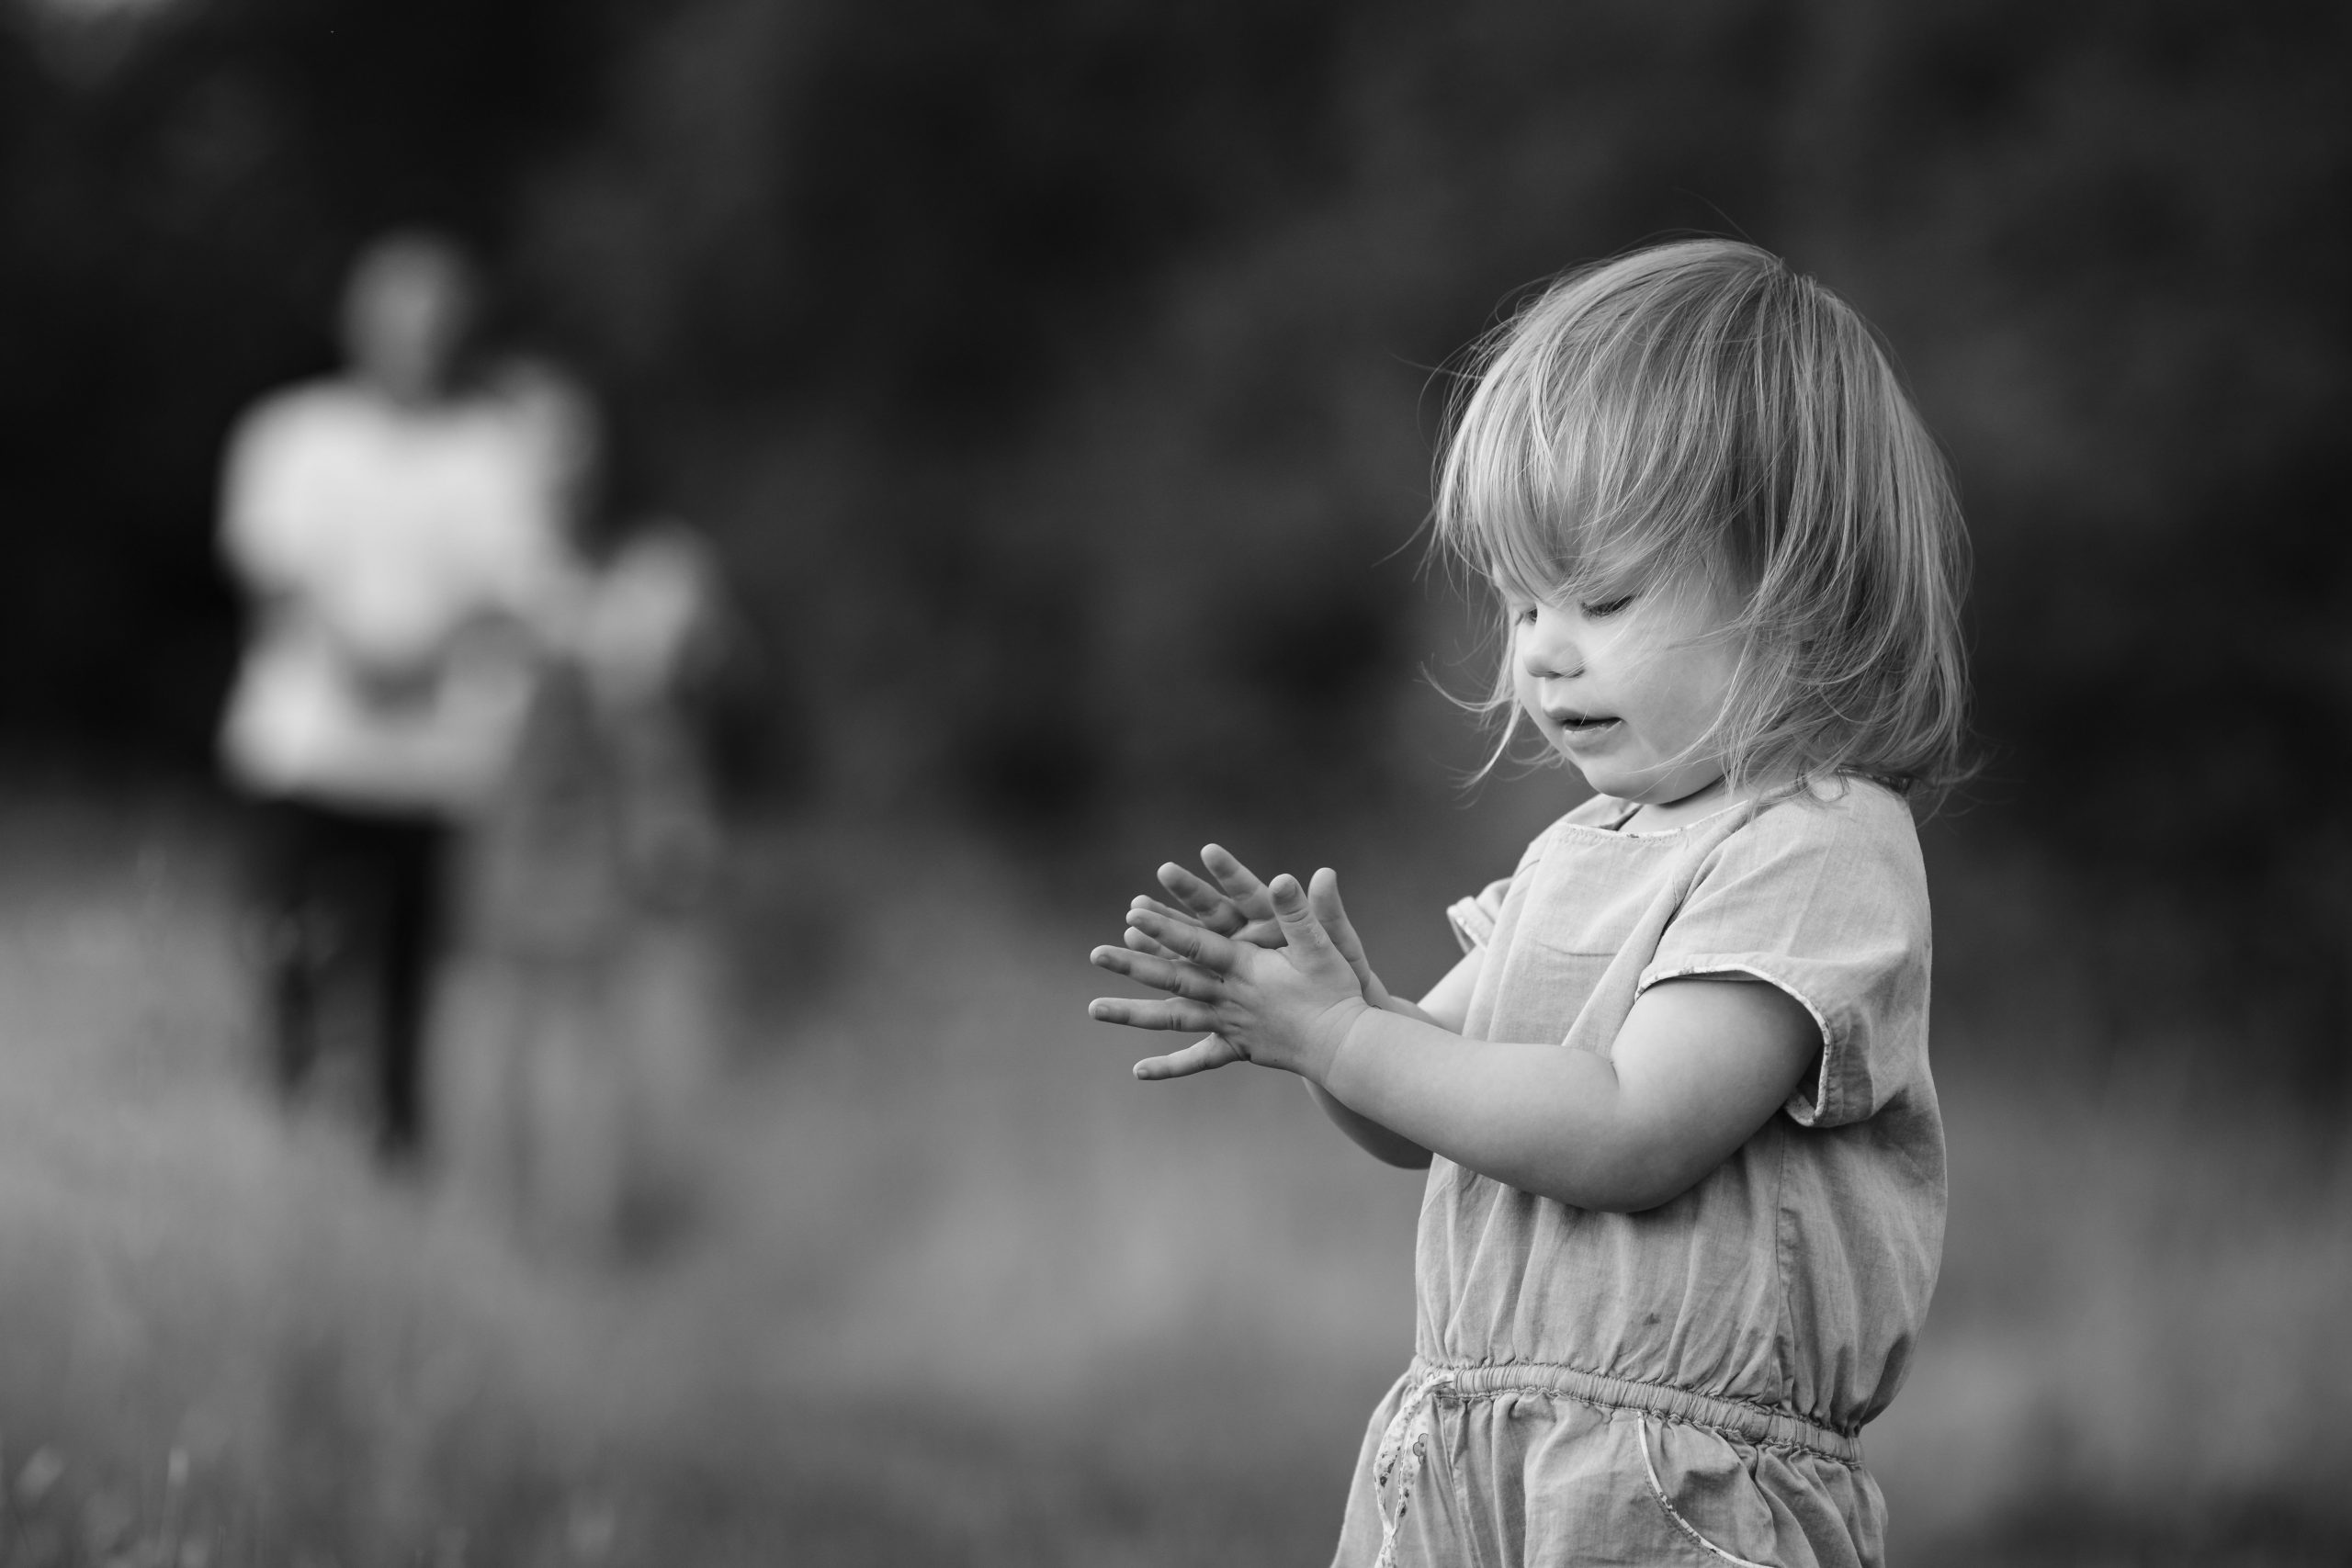 Black and white photo of girl wiping hands